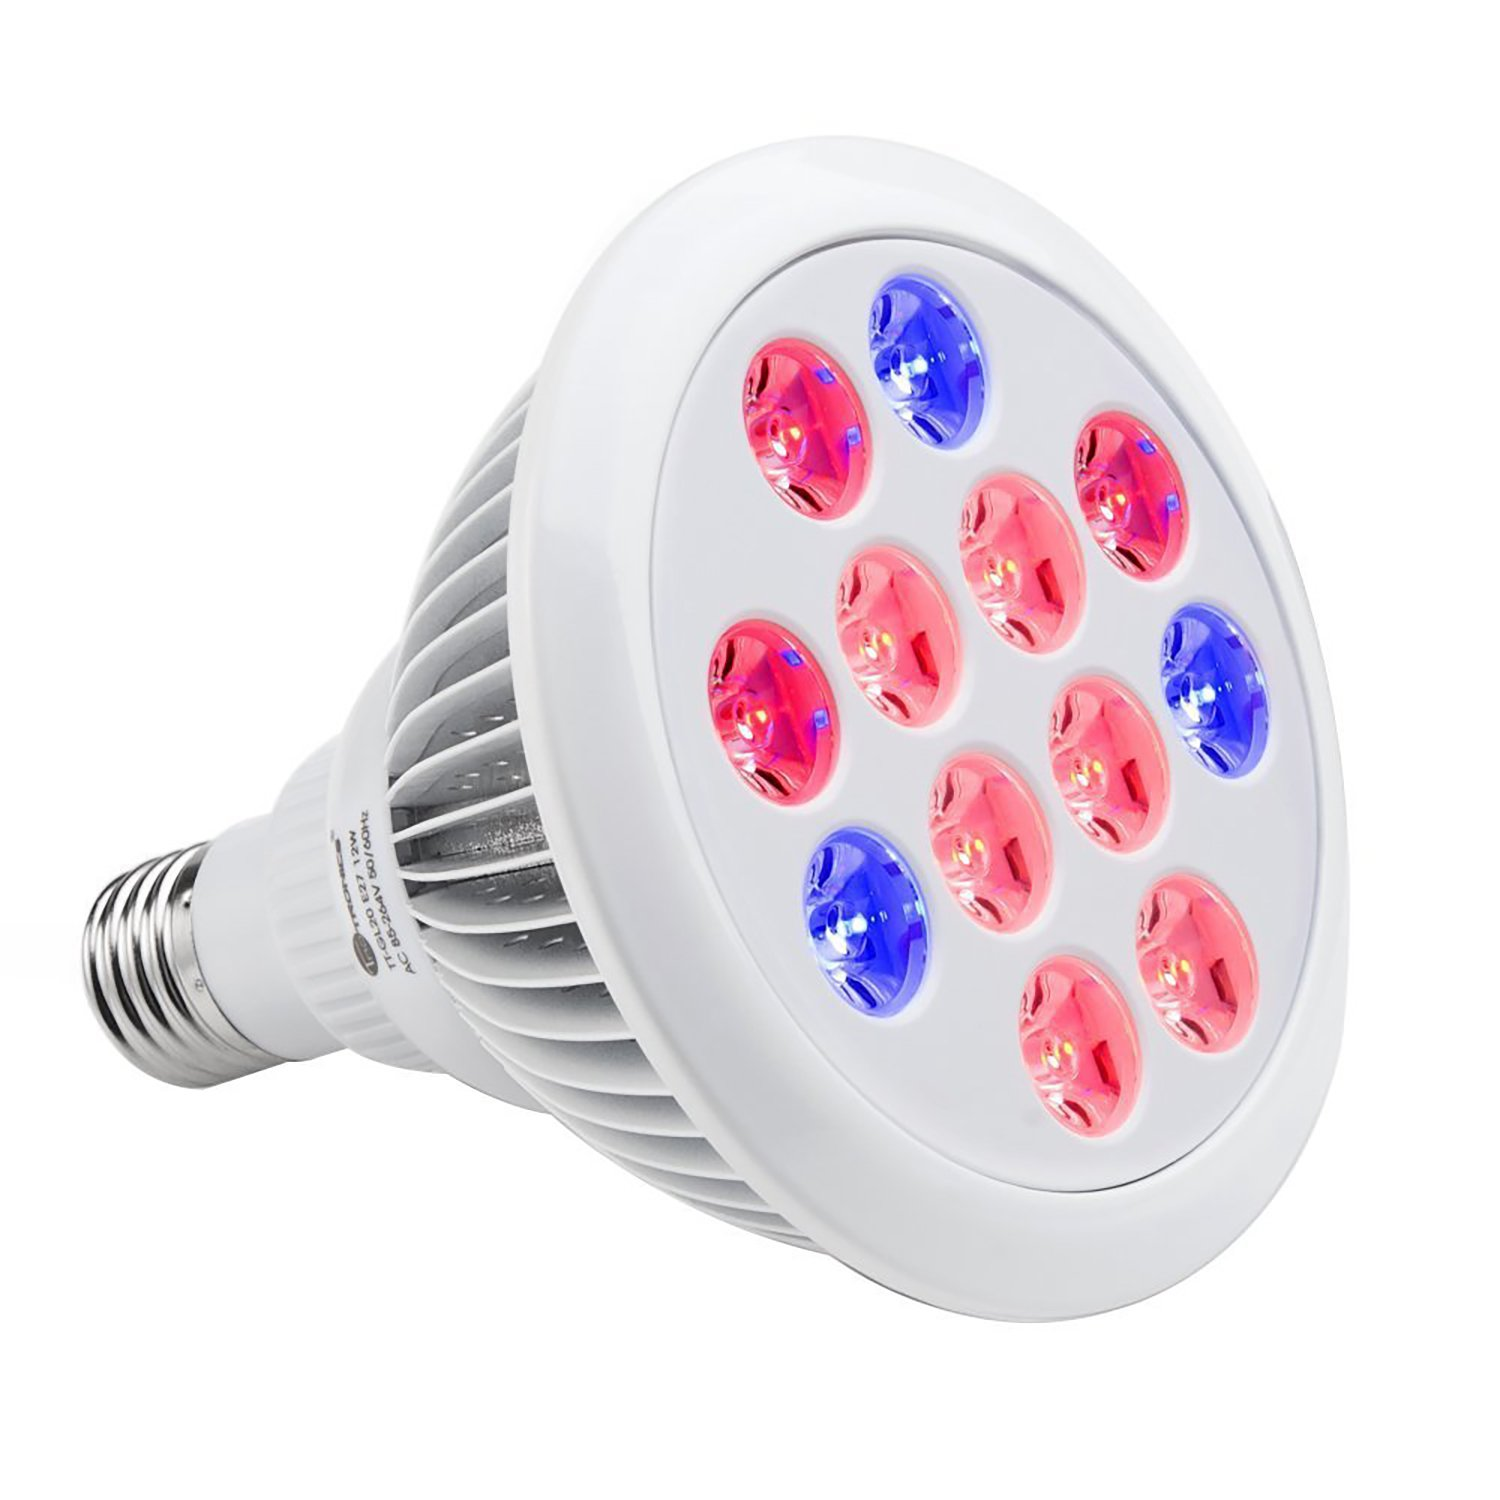 Buy 12w Plant Grow Light Bulb 4vwin E27 Par38 Led Heat Lamp For Indoor Hydroponics Greenhouse Grow Tent Grow Box In Cheap Price On Alibaba Com